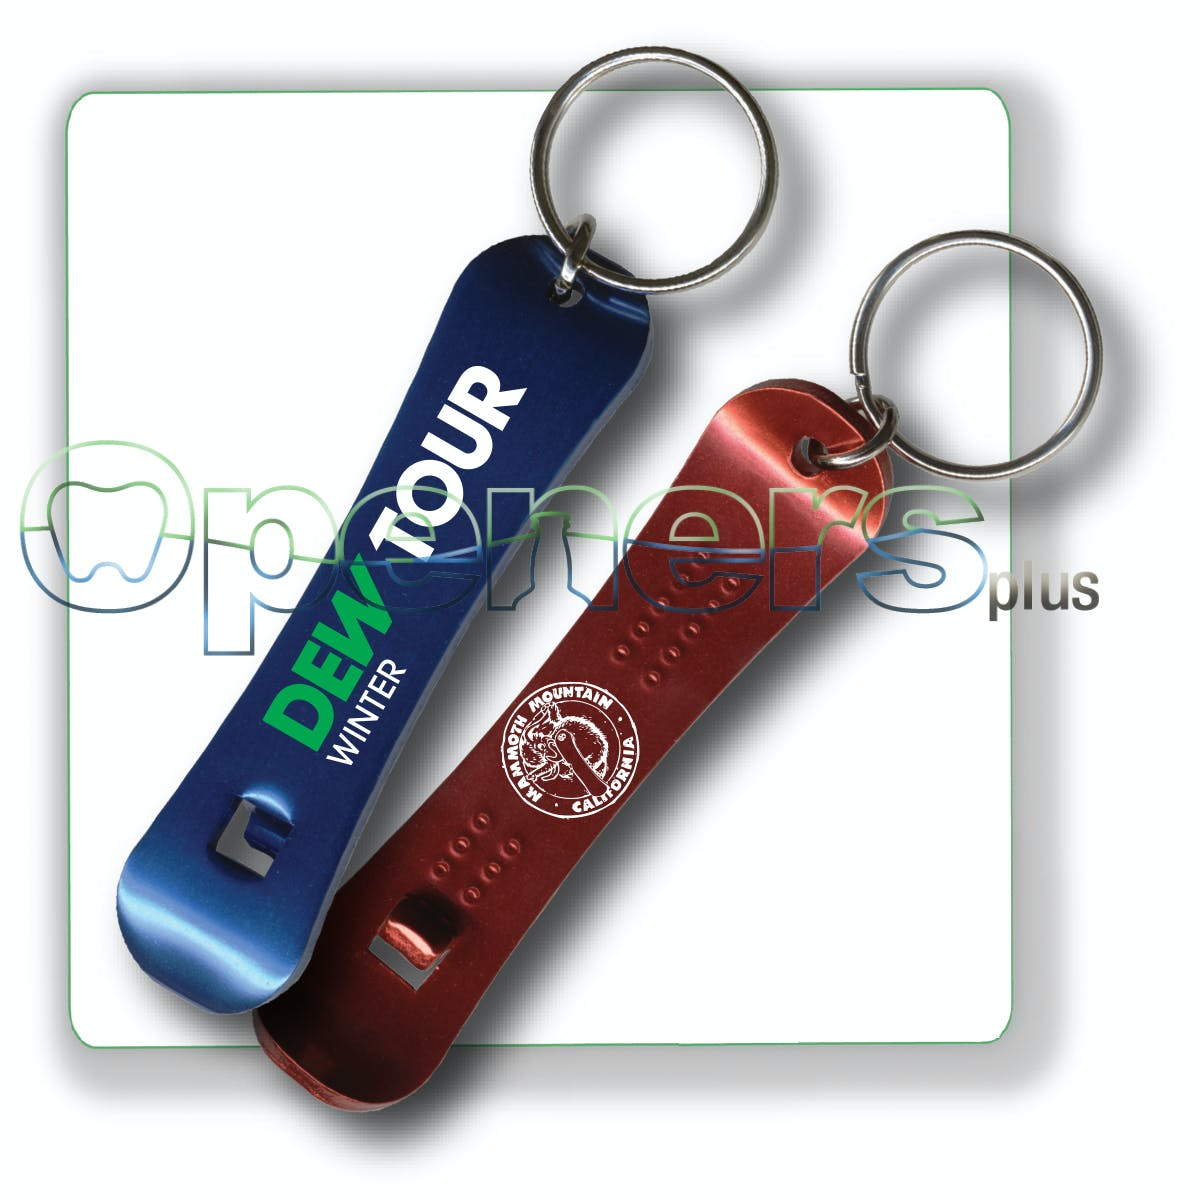 Snowboard opener Bottle opener sold by Openers Plus